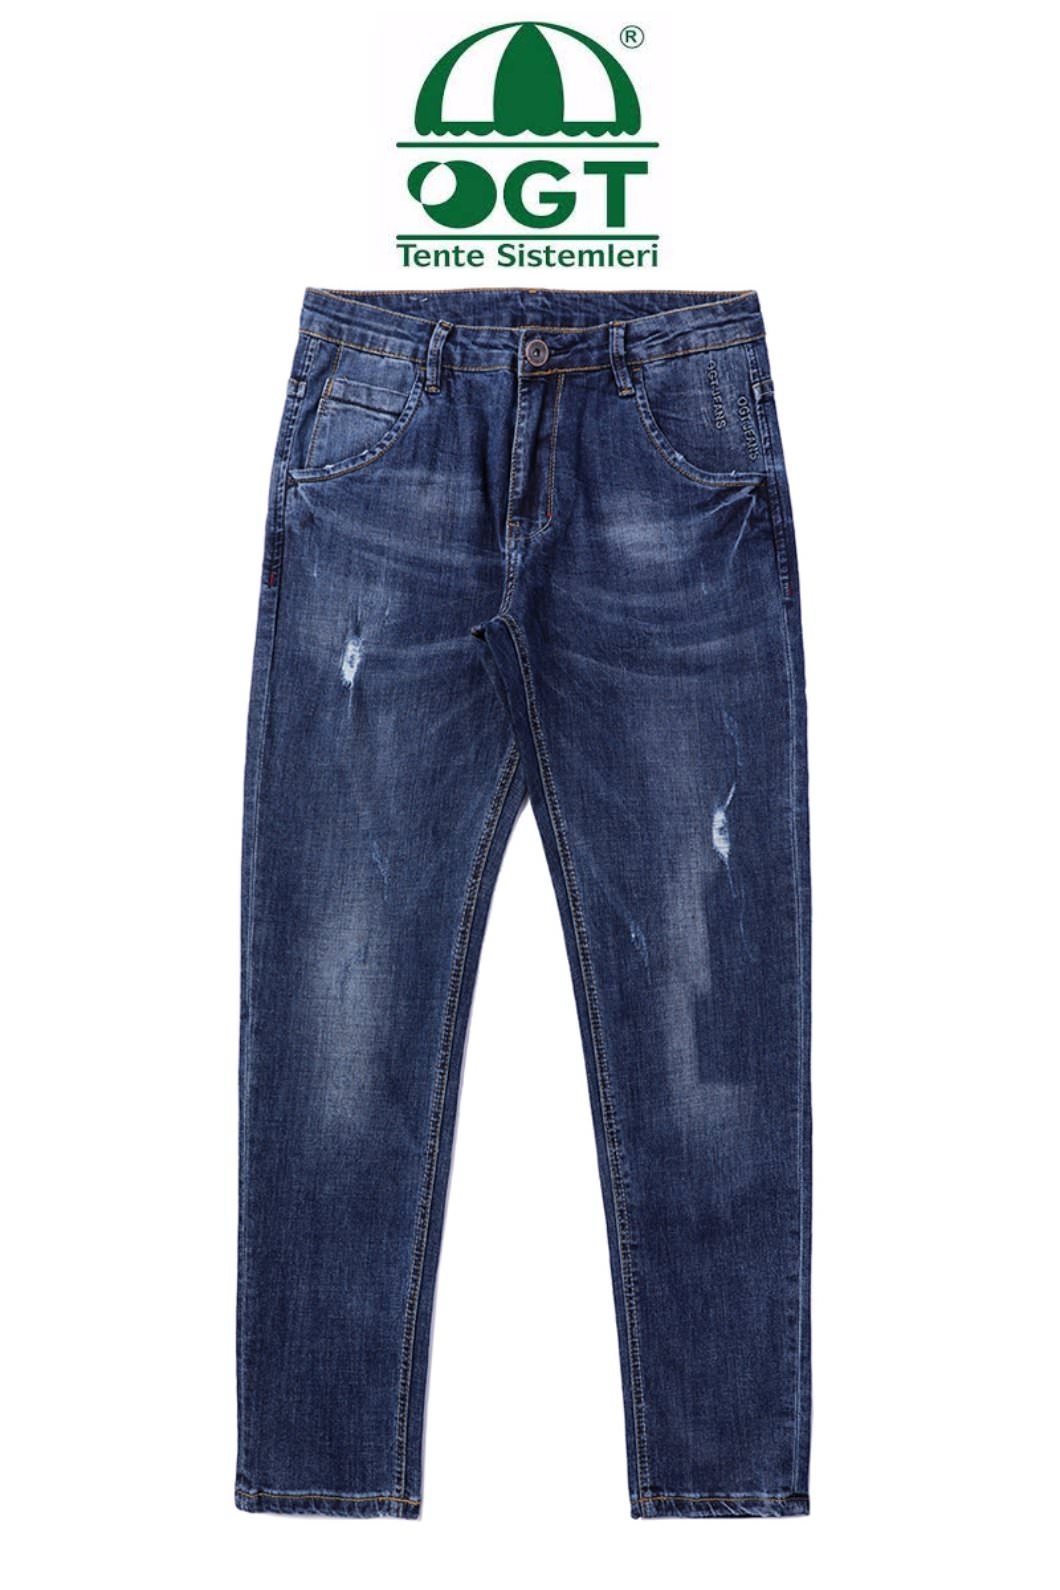 ALPER WASHED DENIM JEANS-BLUE수입한정제품